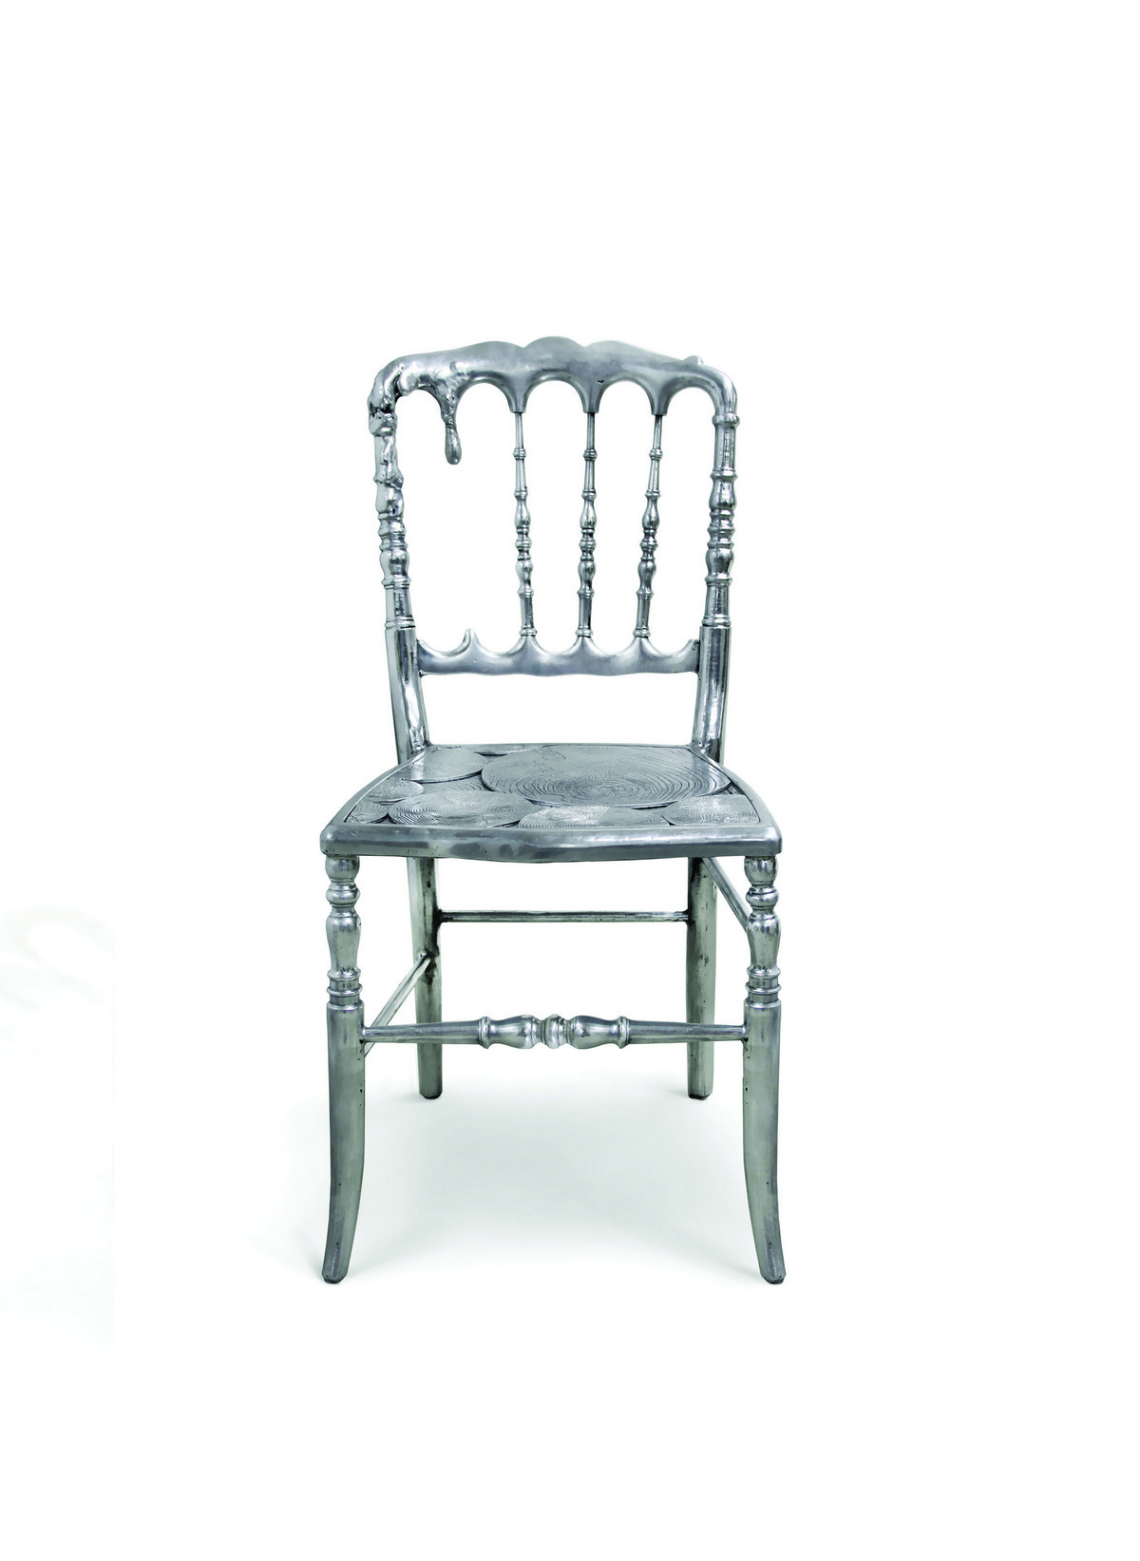 Best Dining Chair Ideas To Inspire You dining chairs Best Dining Chair Ideas To Inspire You 1 1